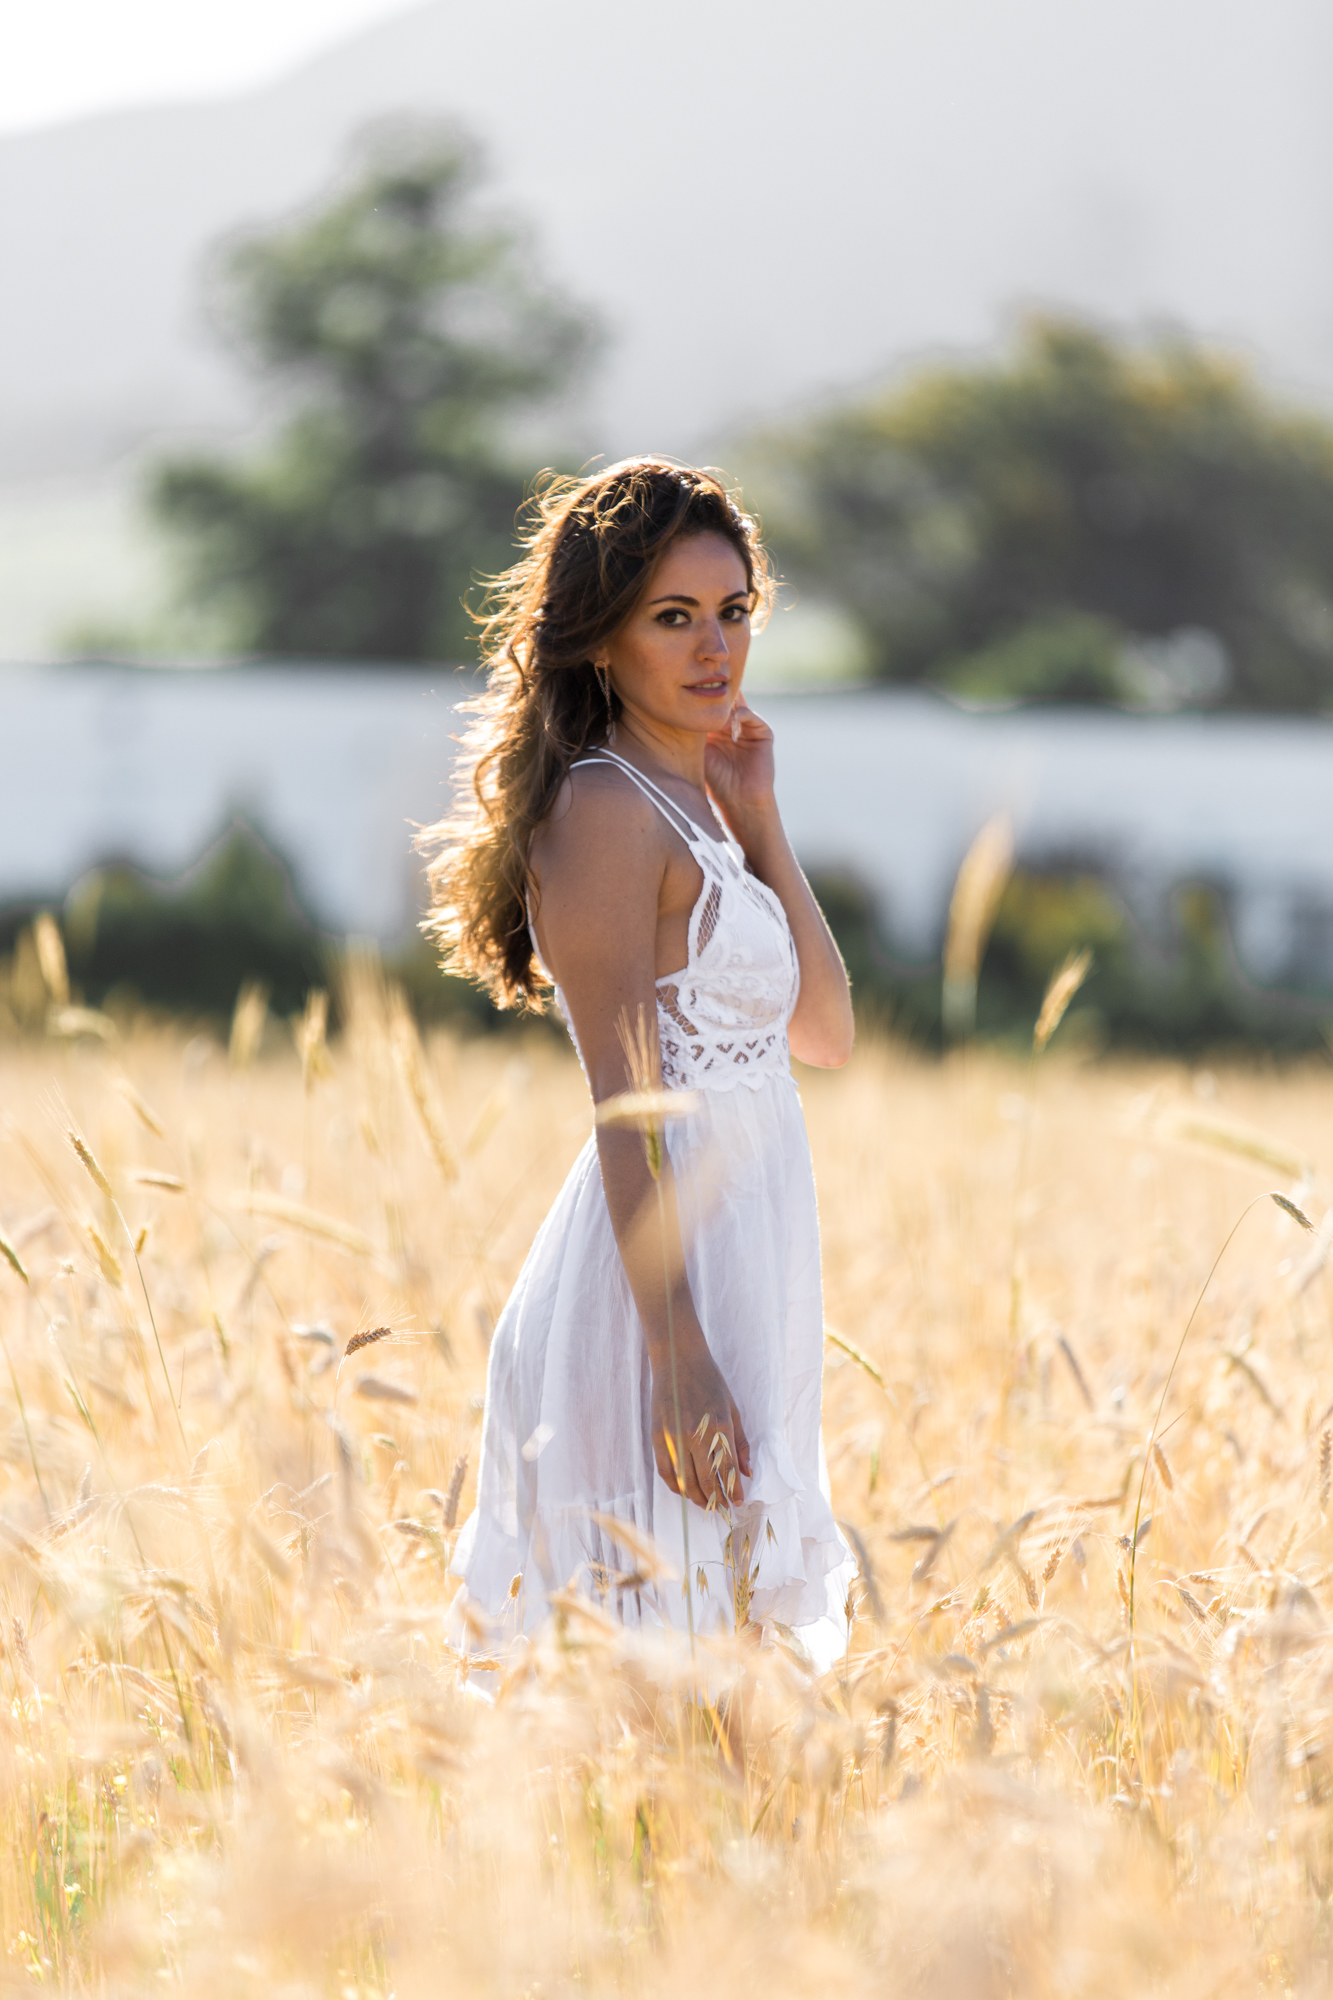 Luxury travel & lifestyle blogger, Megan Elliot at Lush to Blush shares a look at a golden hour photo shoot while traveling to Groot Constantia in Cape Town.